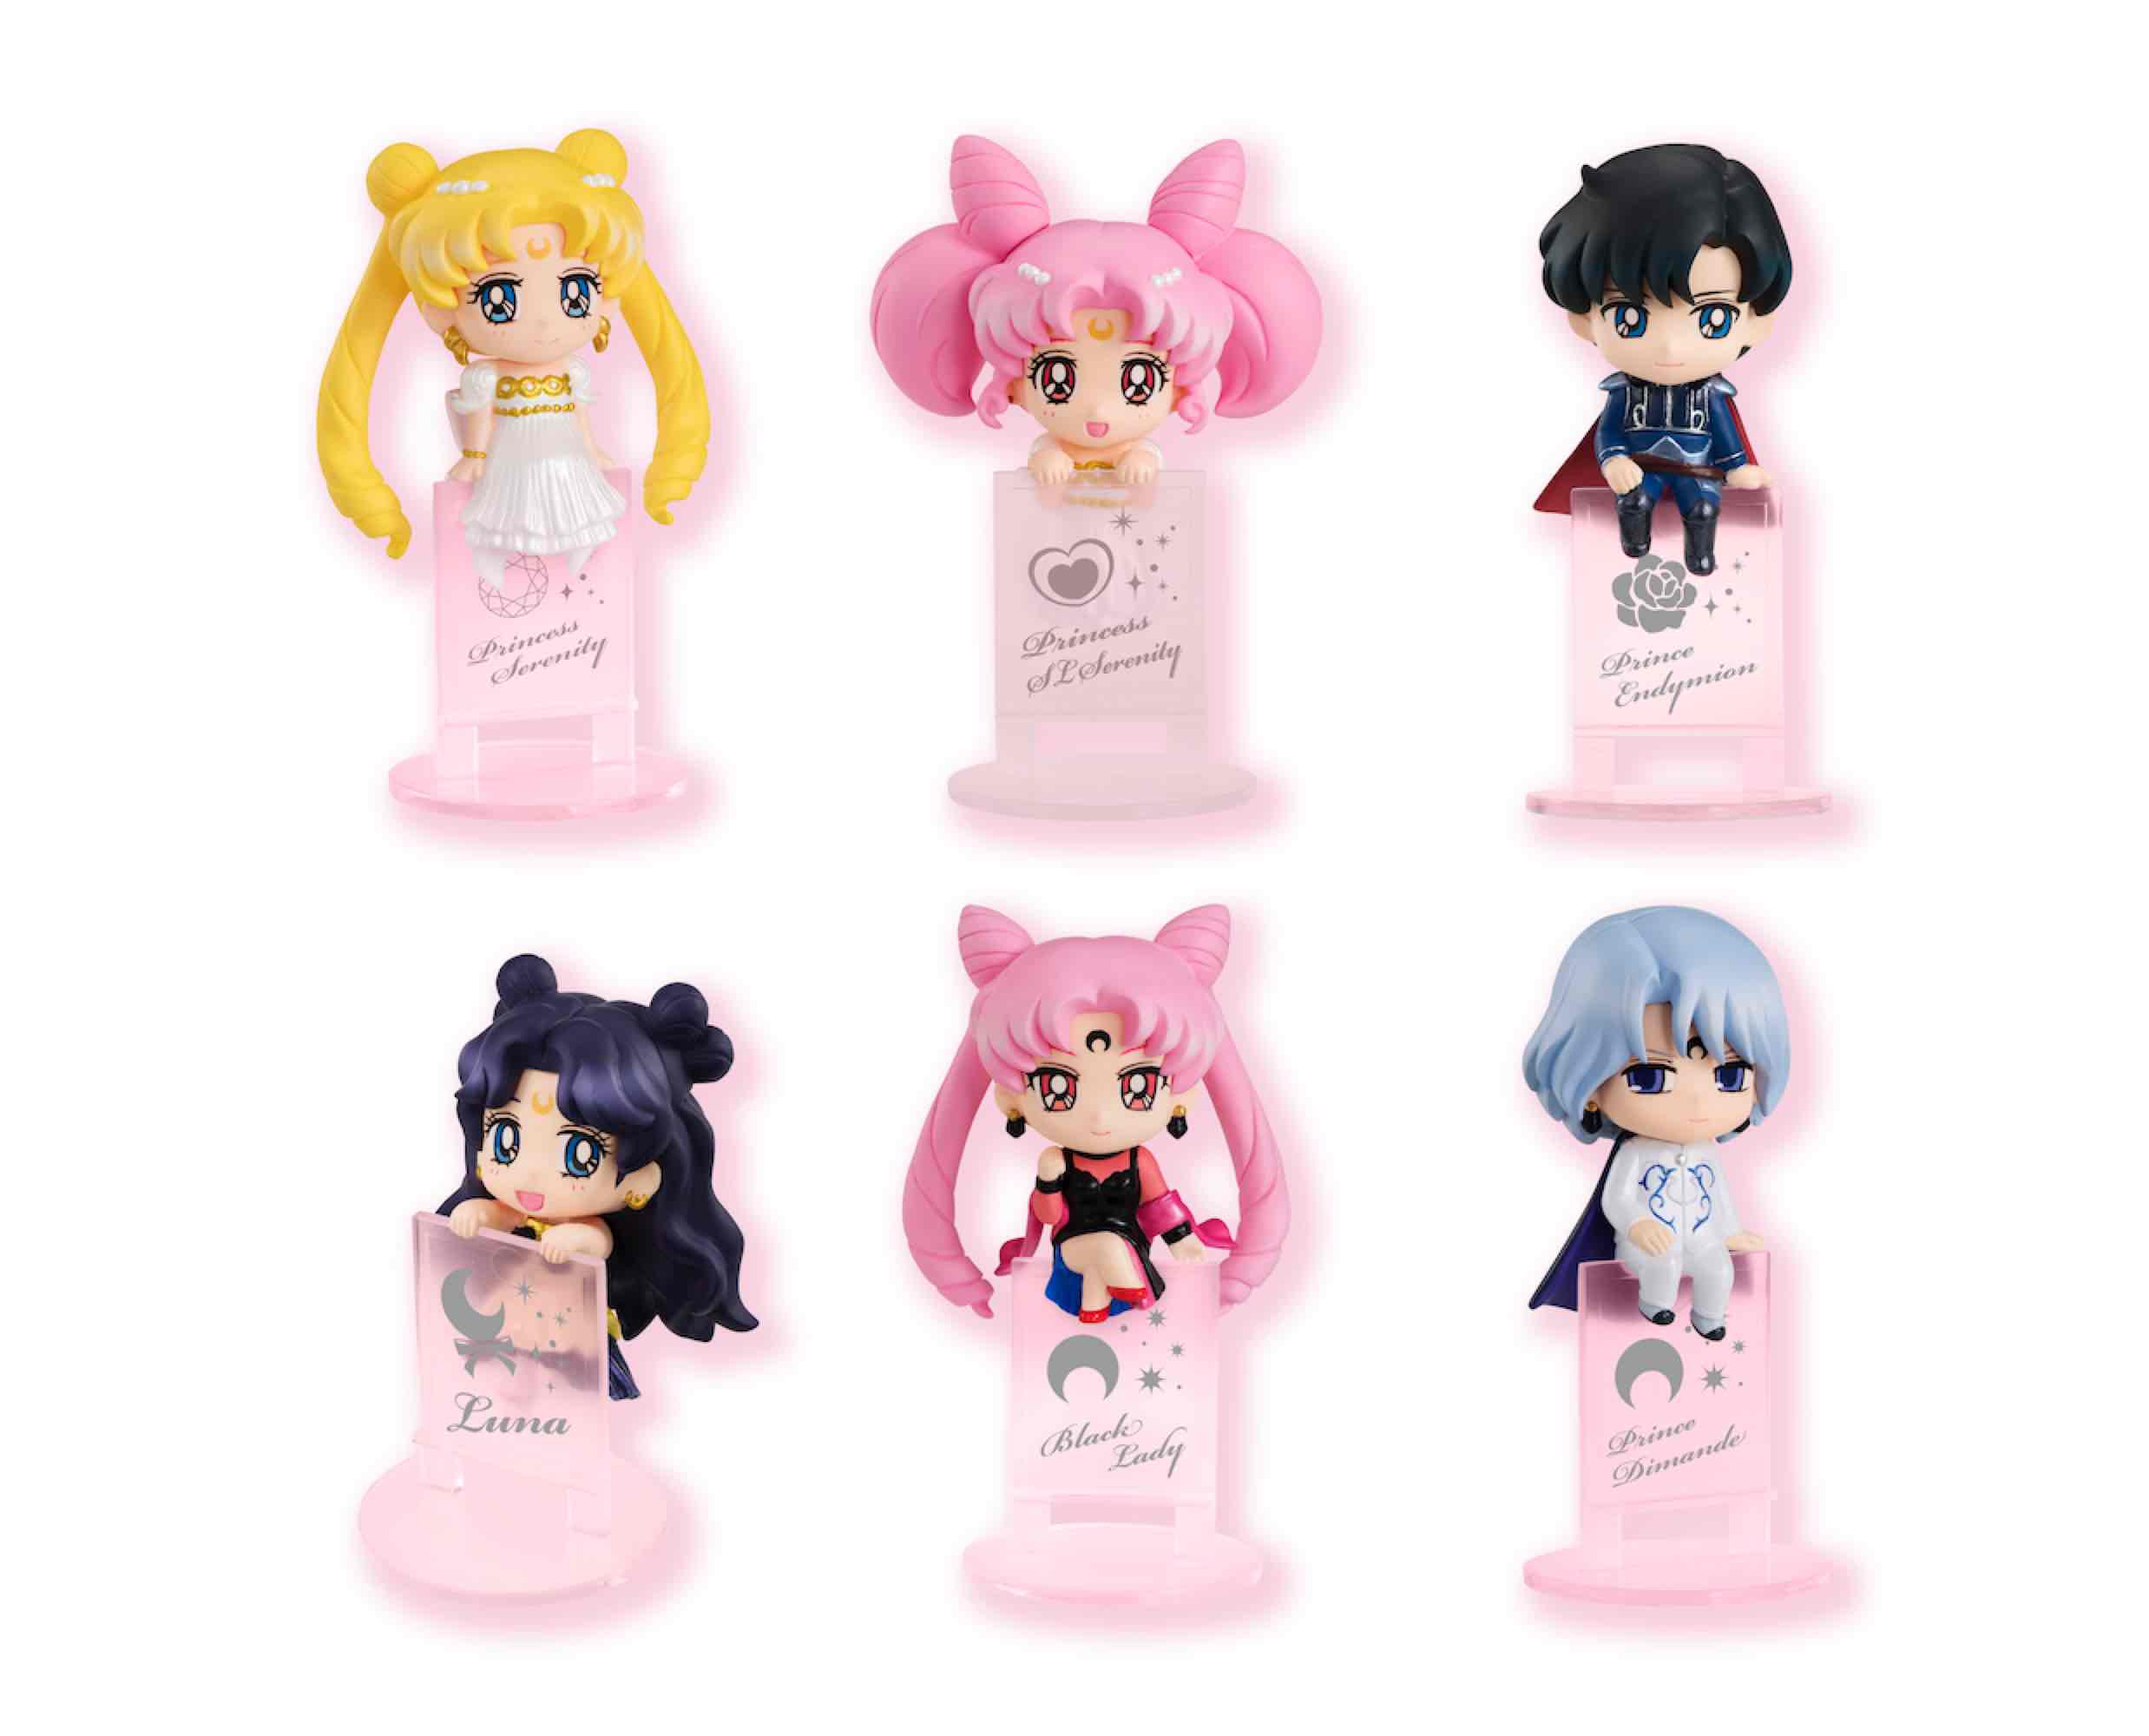 NIGHT & DAY DISPLAY 8 FIGURAS 4.5 CM SAILOR MOON OCHATOMO SERIES